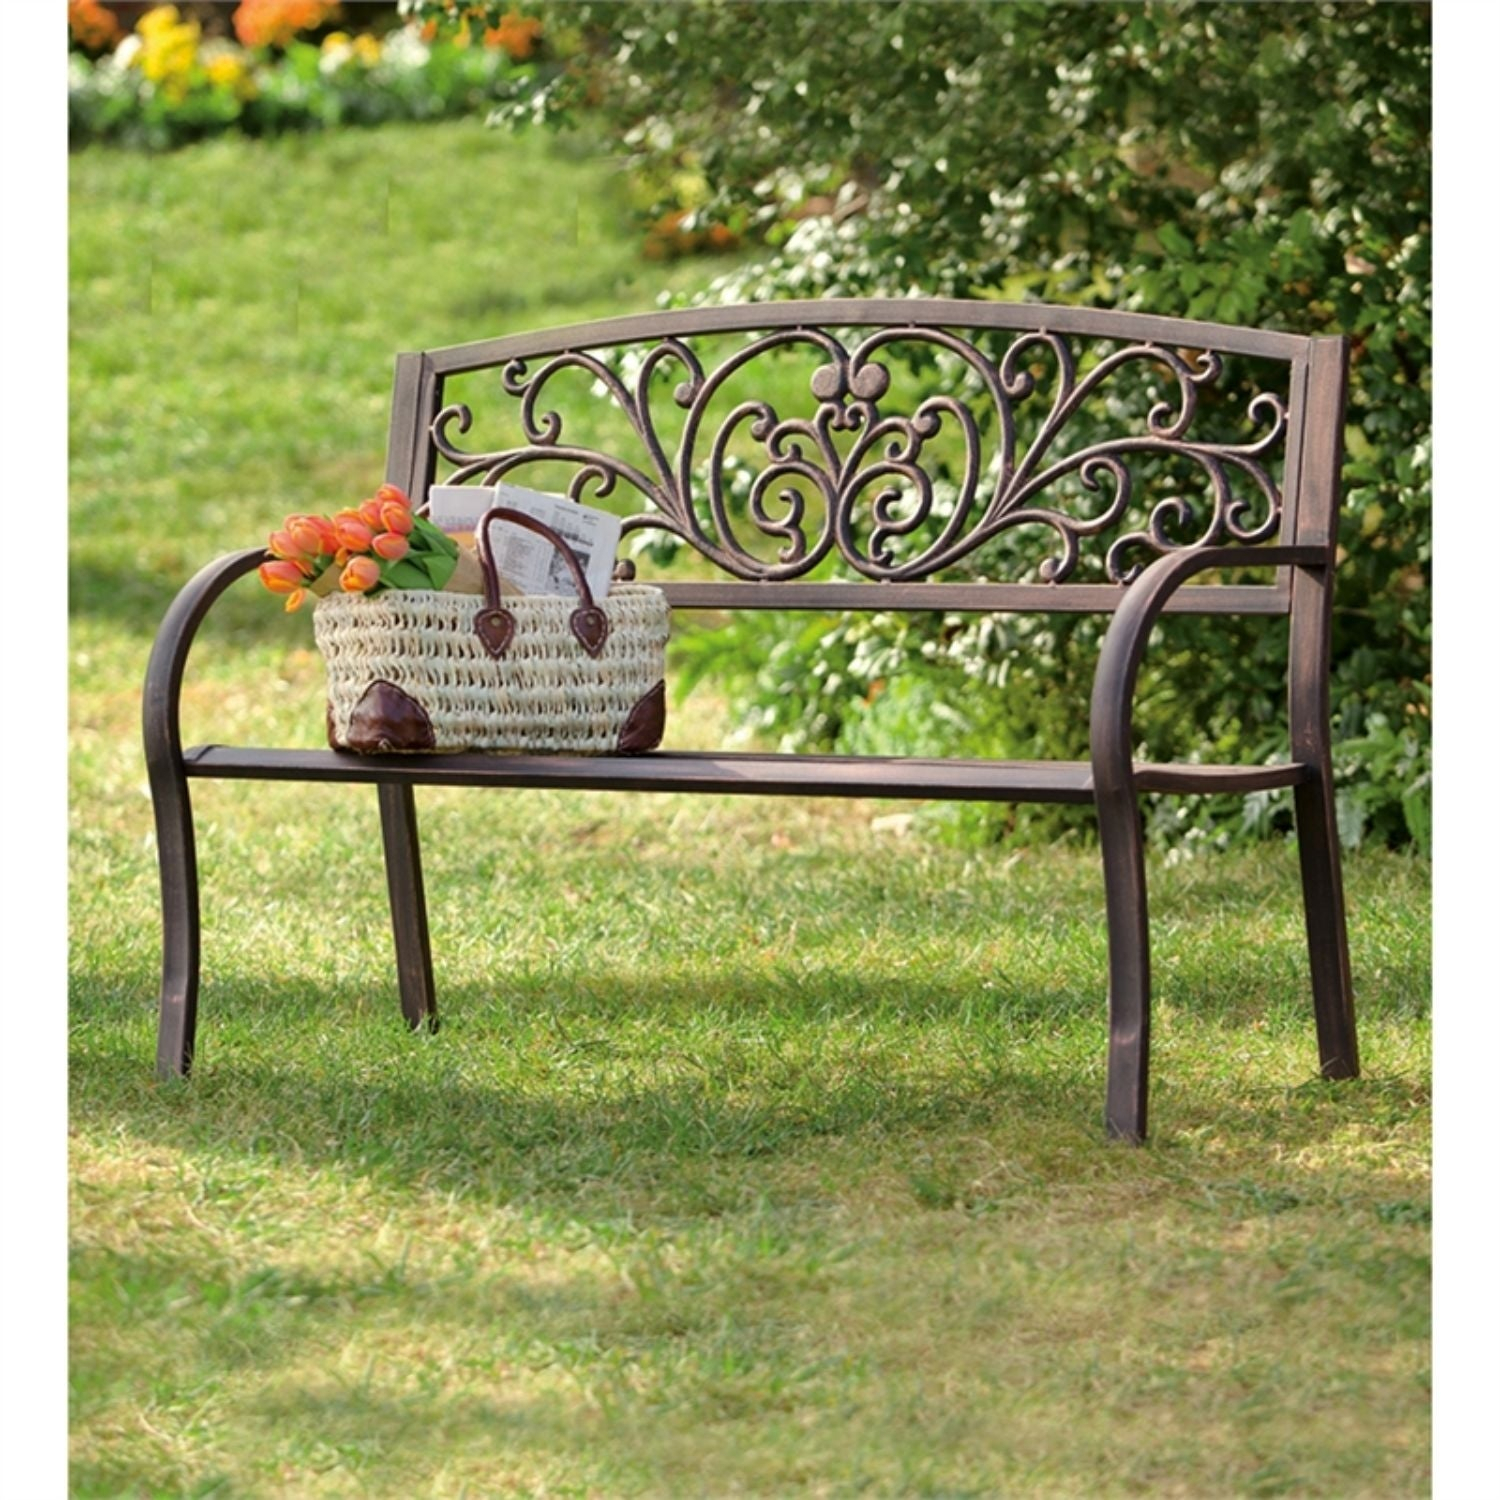 50 Inch Blooming Garden Metal Bench Intended For Blooming Iron Garden Benches (View 2 of 25)